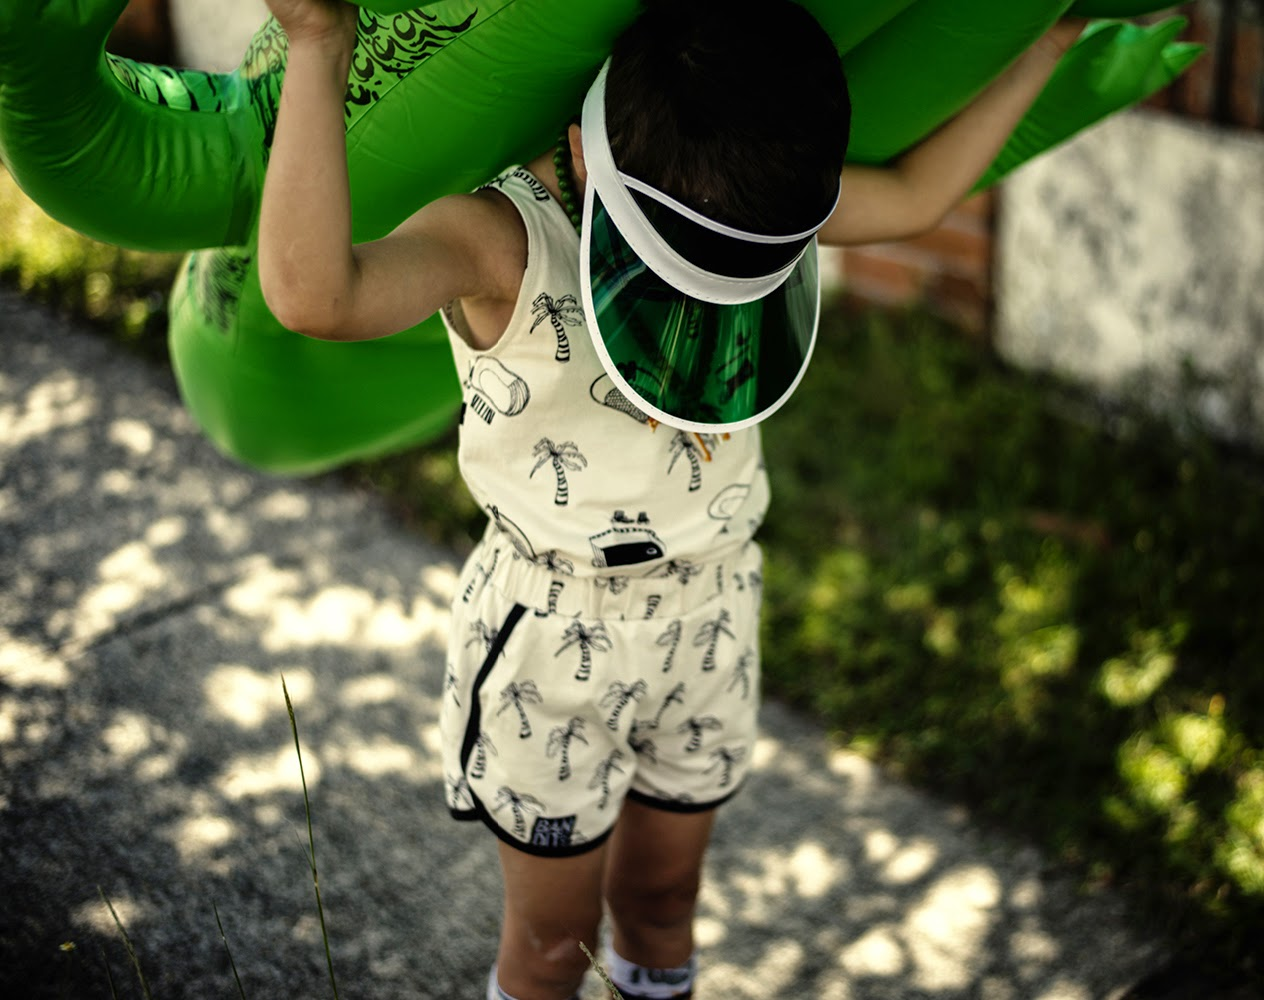 Bandit Kids SS15 preview 'Kingdom of Cool' Palm tree print